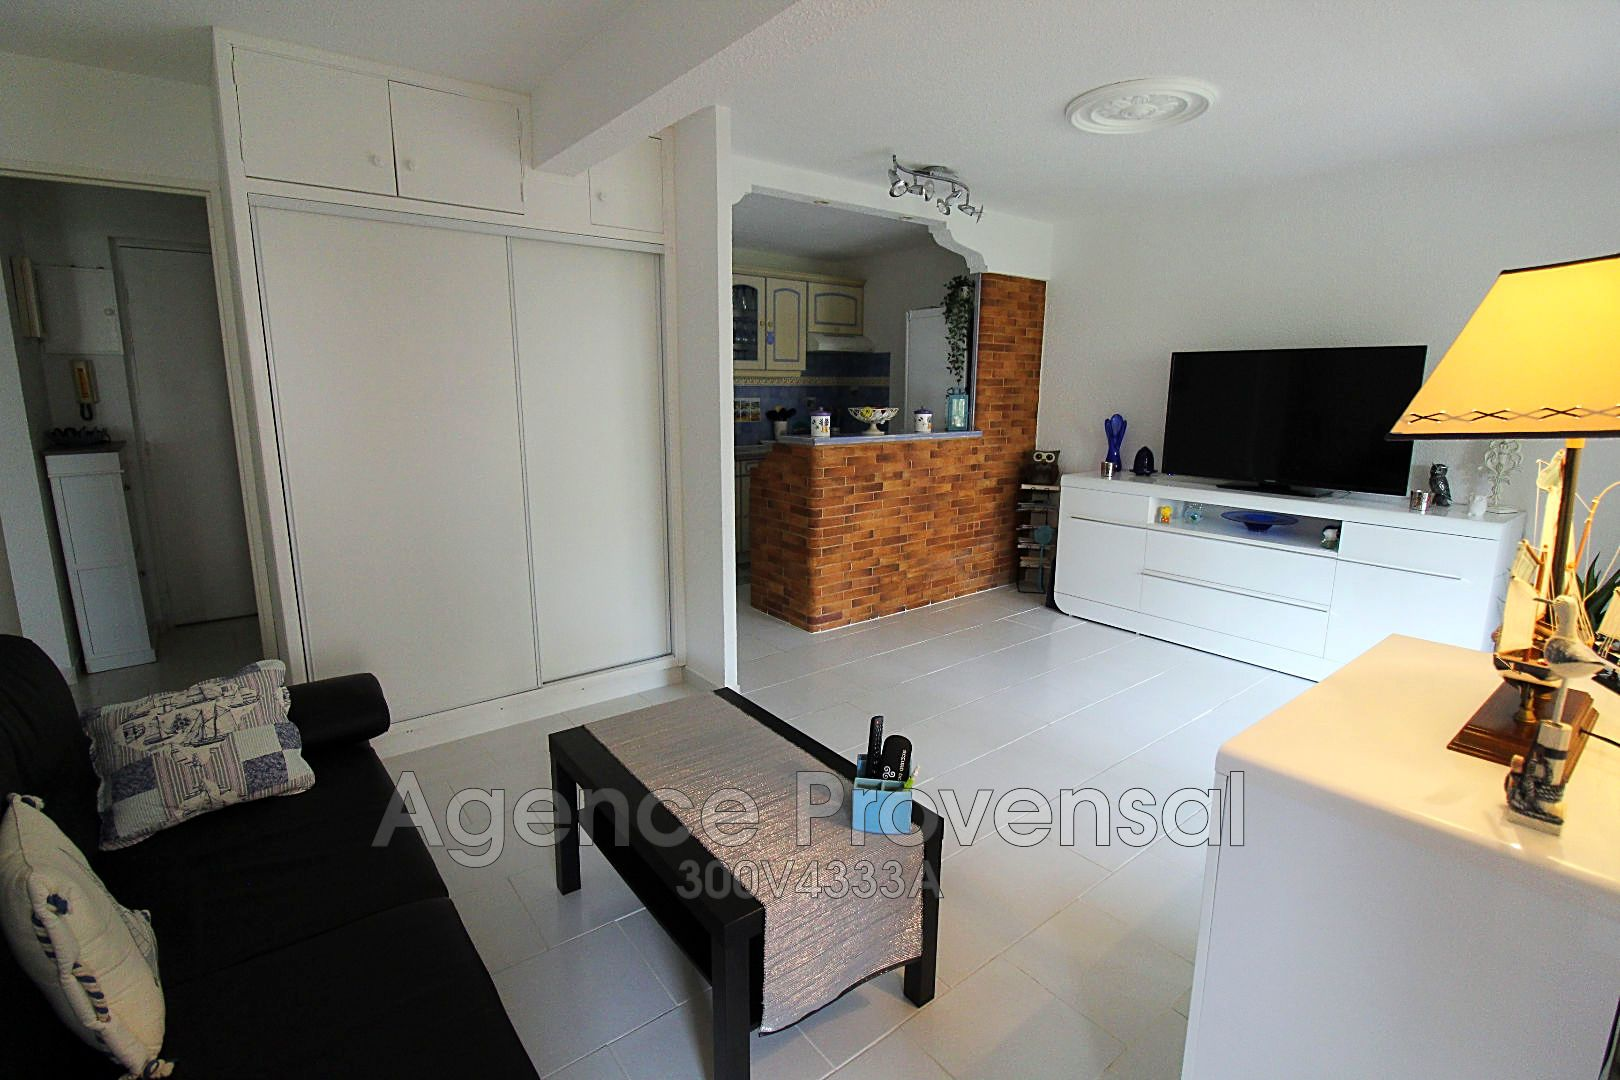 Appartement t2 sainte maxime agence provensal for Appartement t2